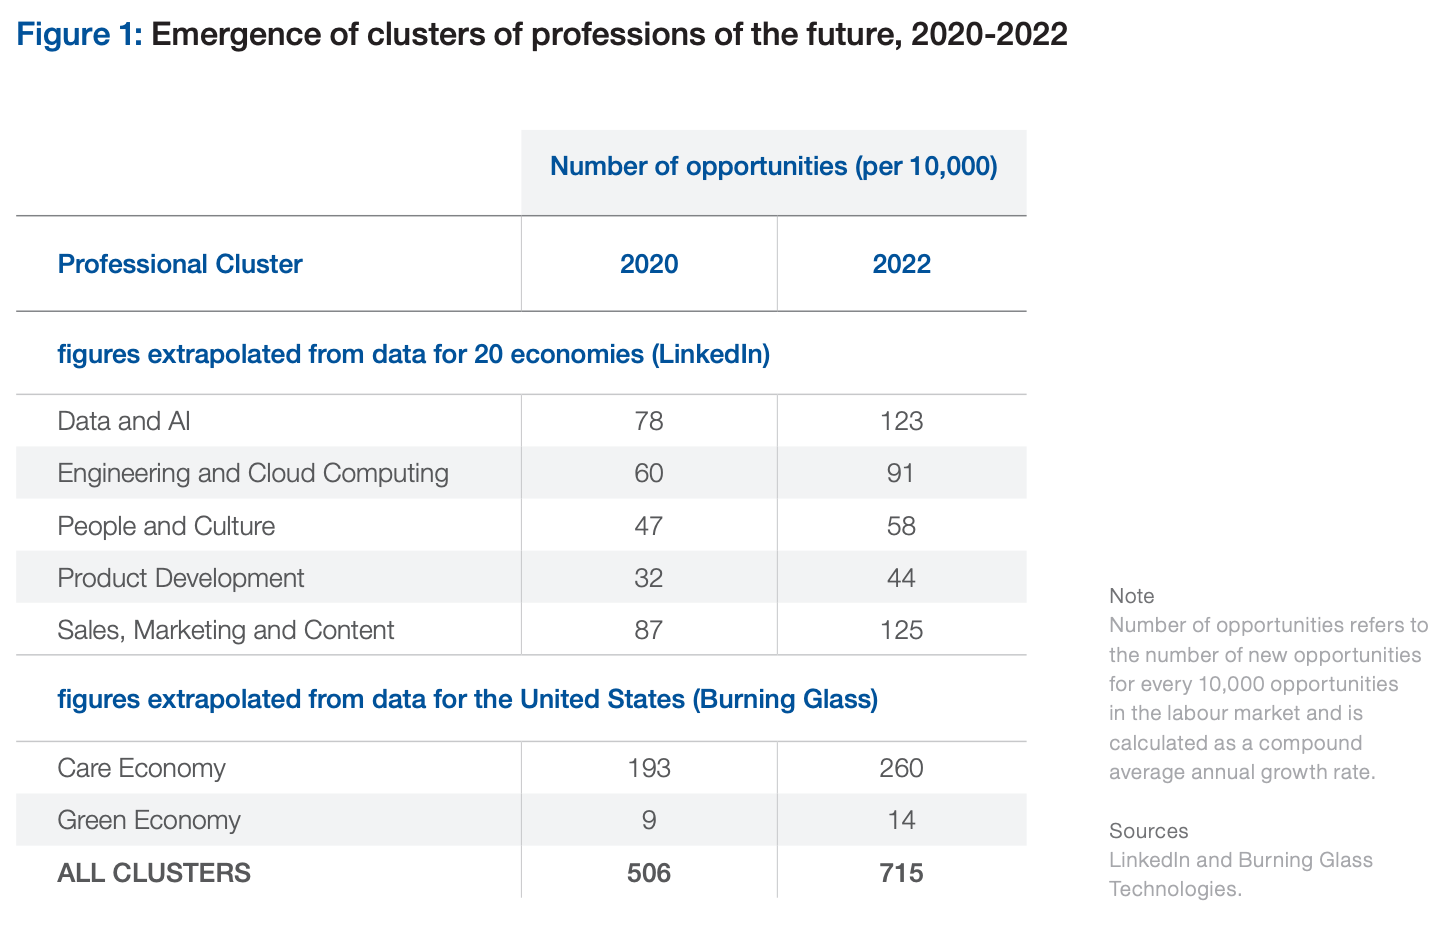 Emergence of clusters of professions of the future, 2020-2022